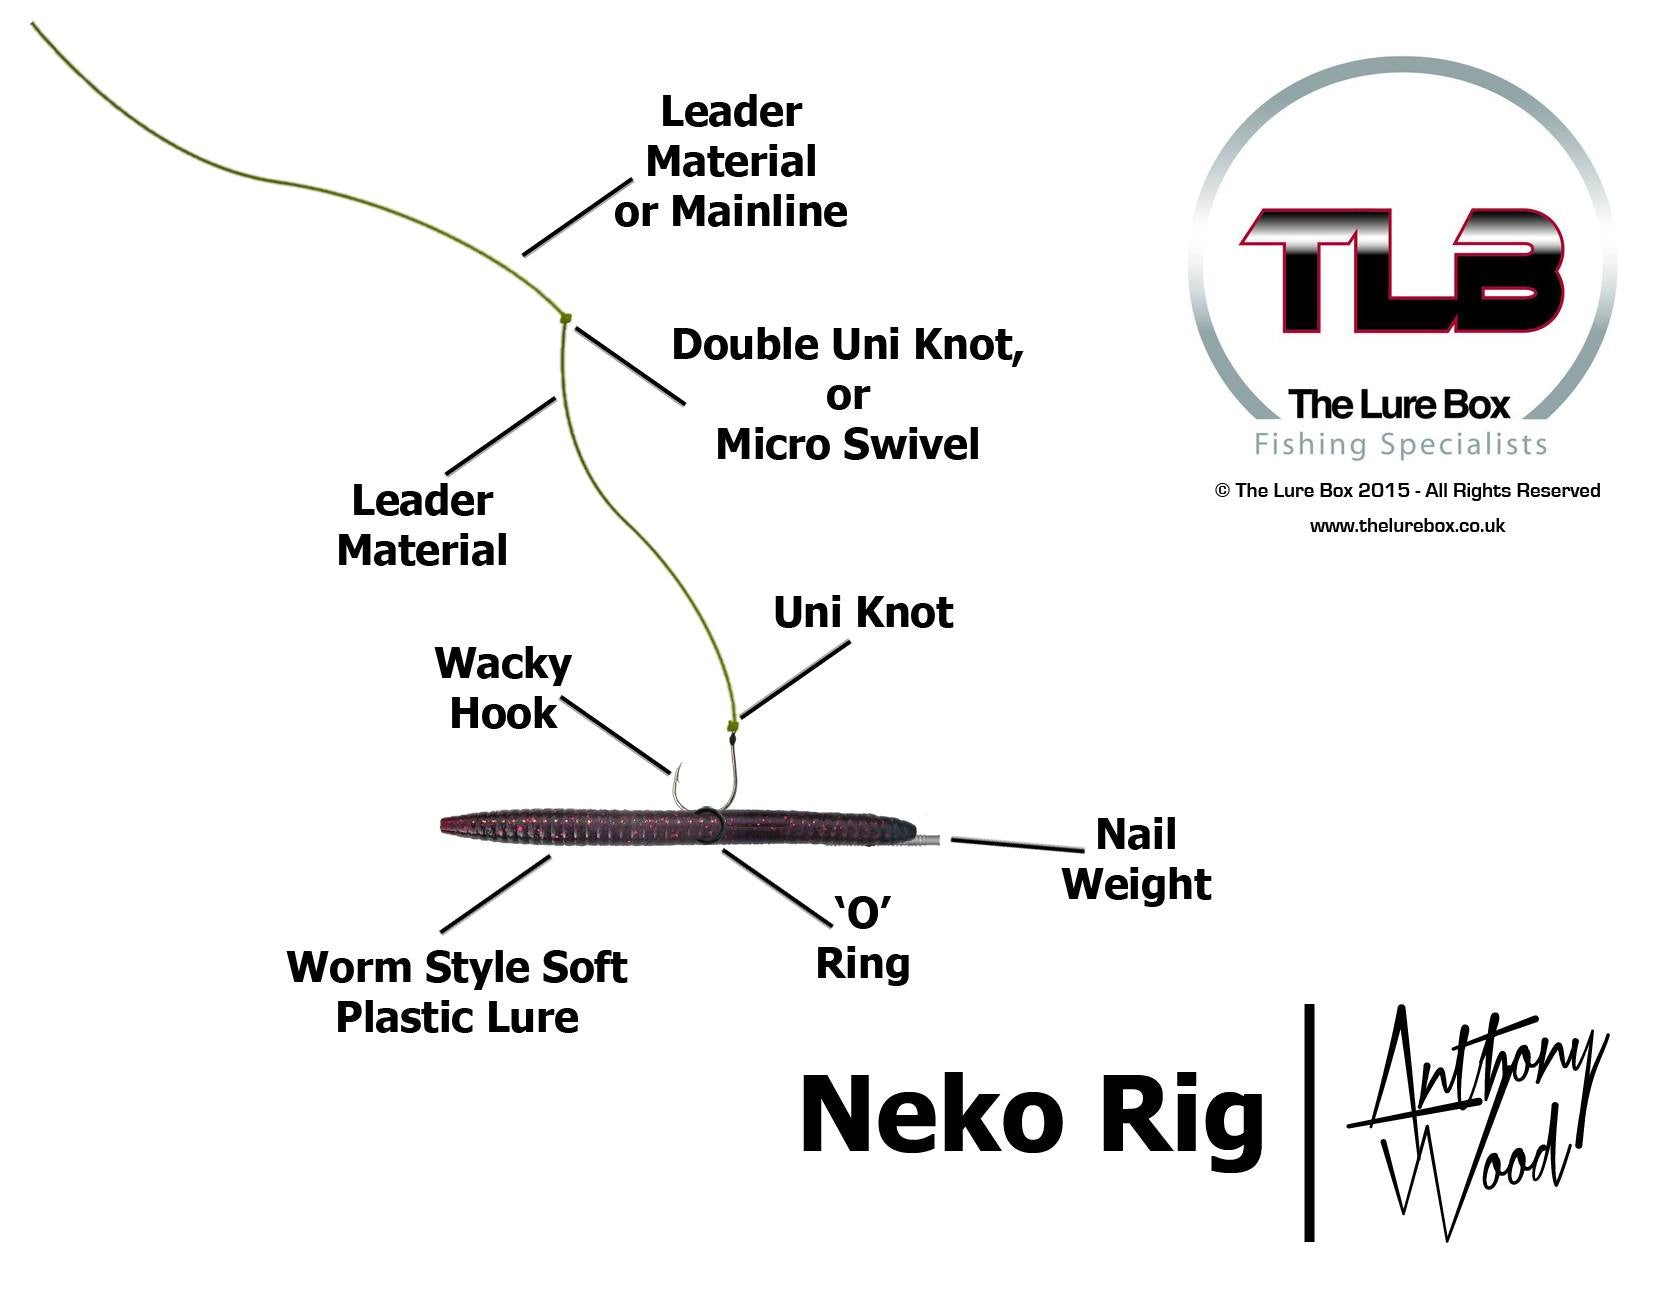 Neko rig diagram lure fishing the lure box the lure box for Neko rig fishing